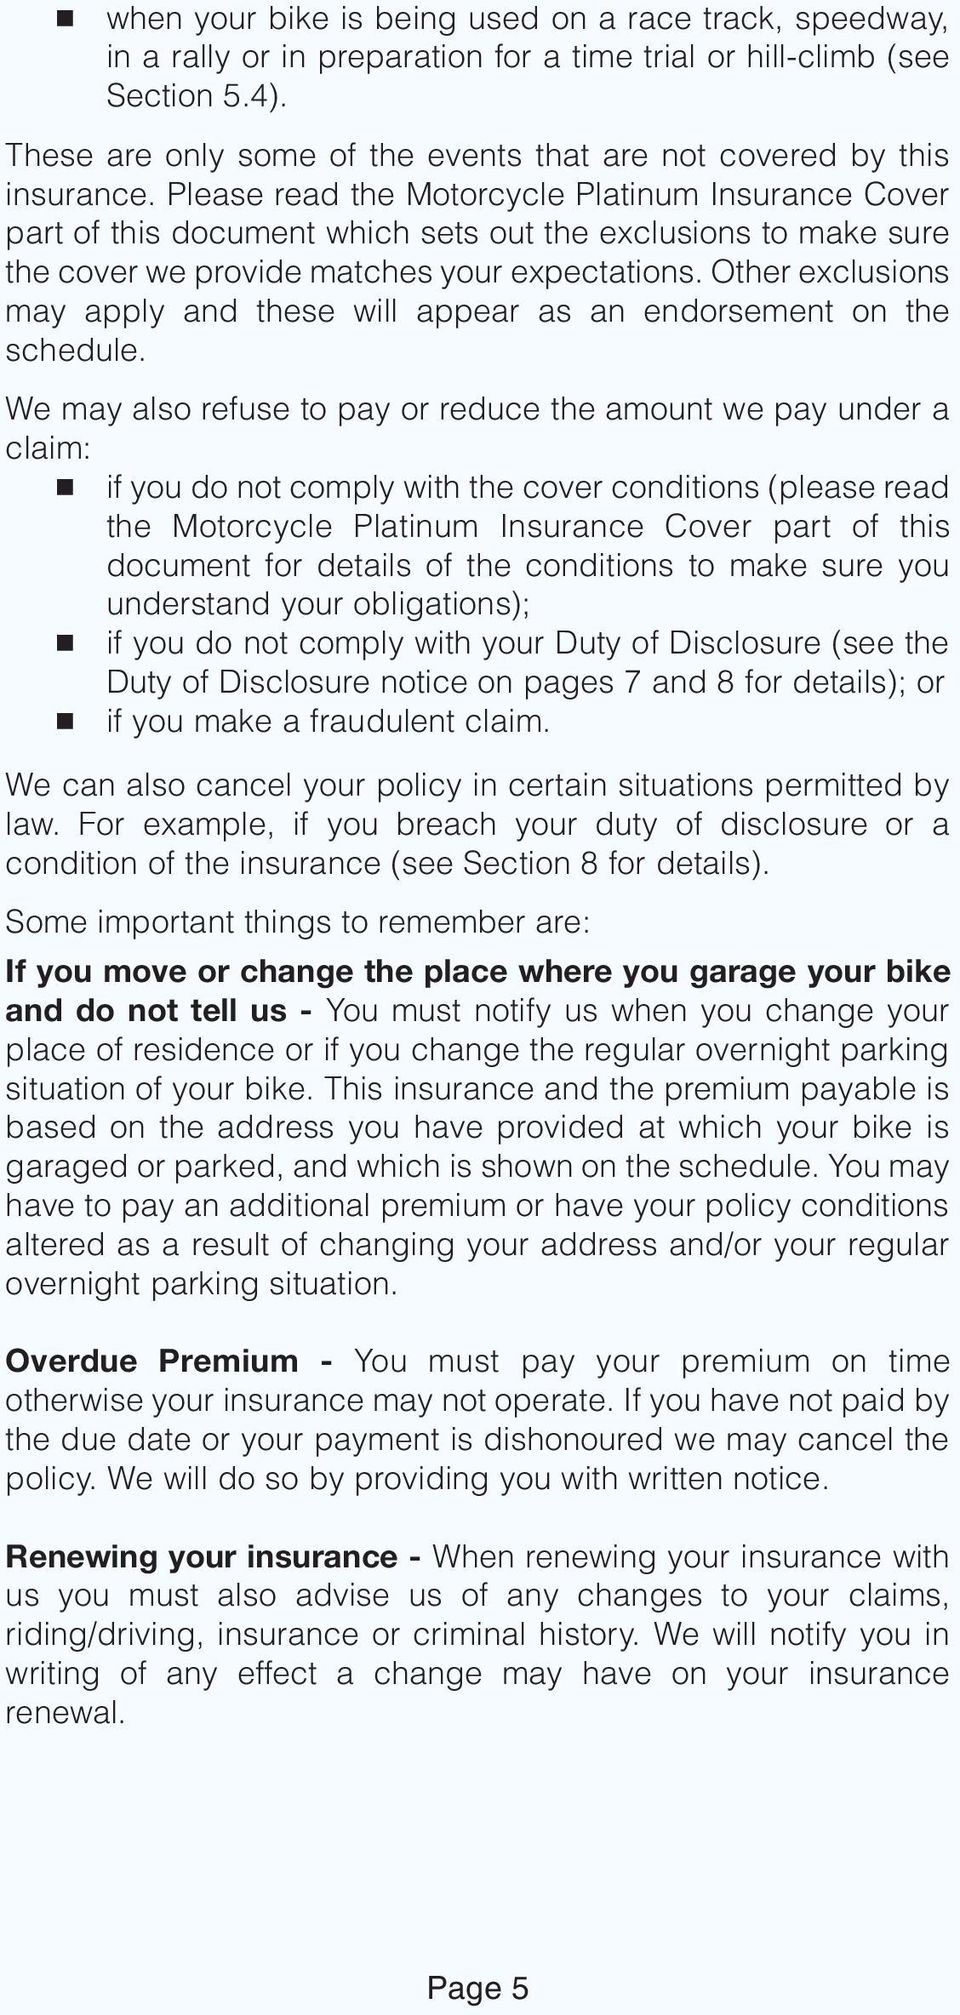 Please read the Motorcycle Platinum Insurance Cover part of this document which sets out the exclusions to make sure the cover we provide matches your expectations.